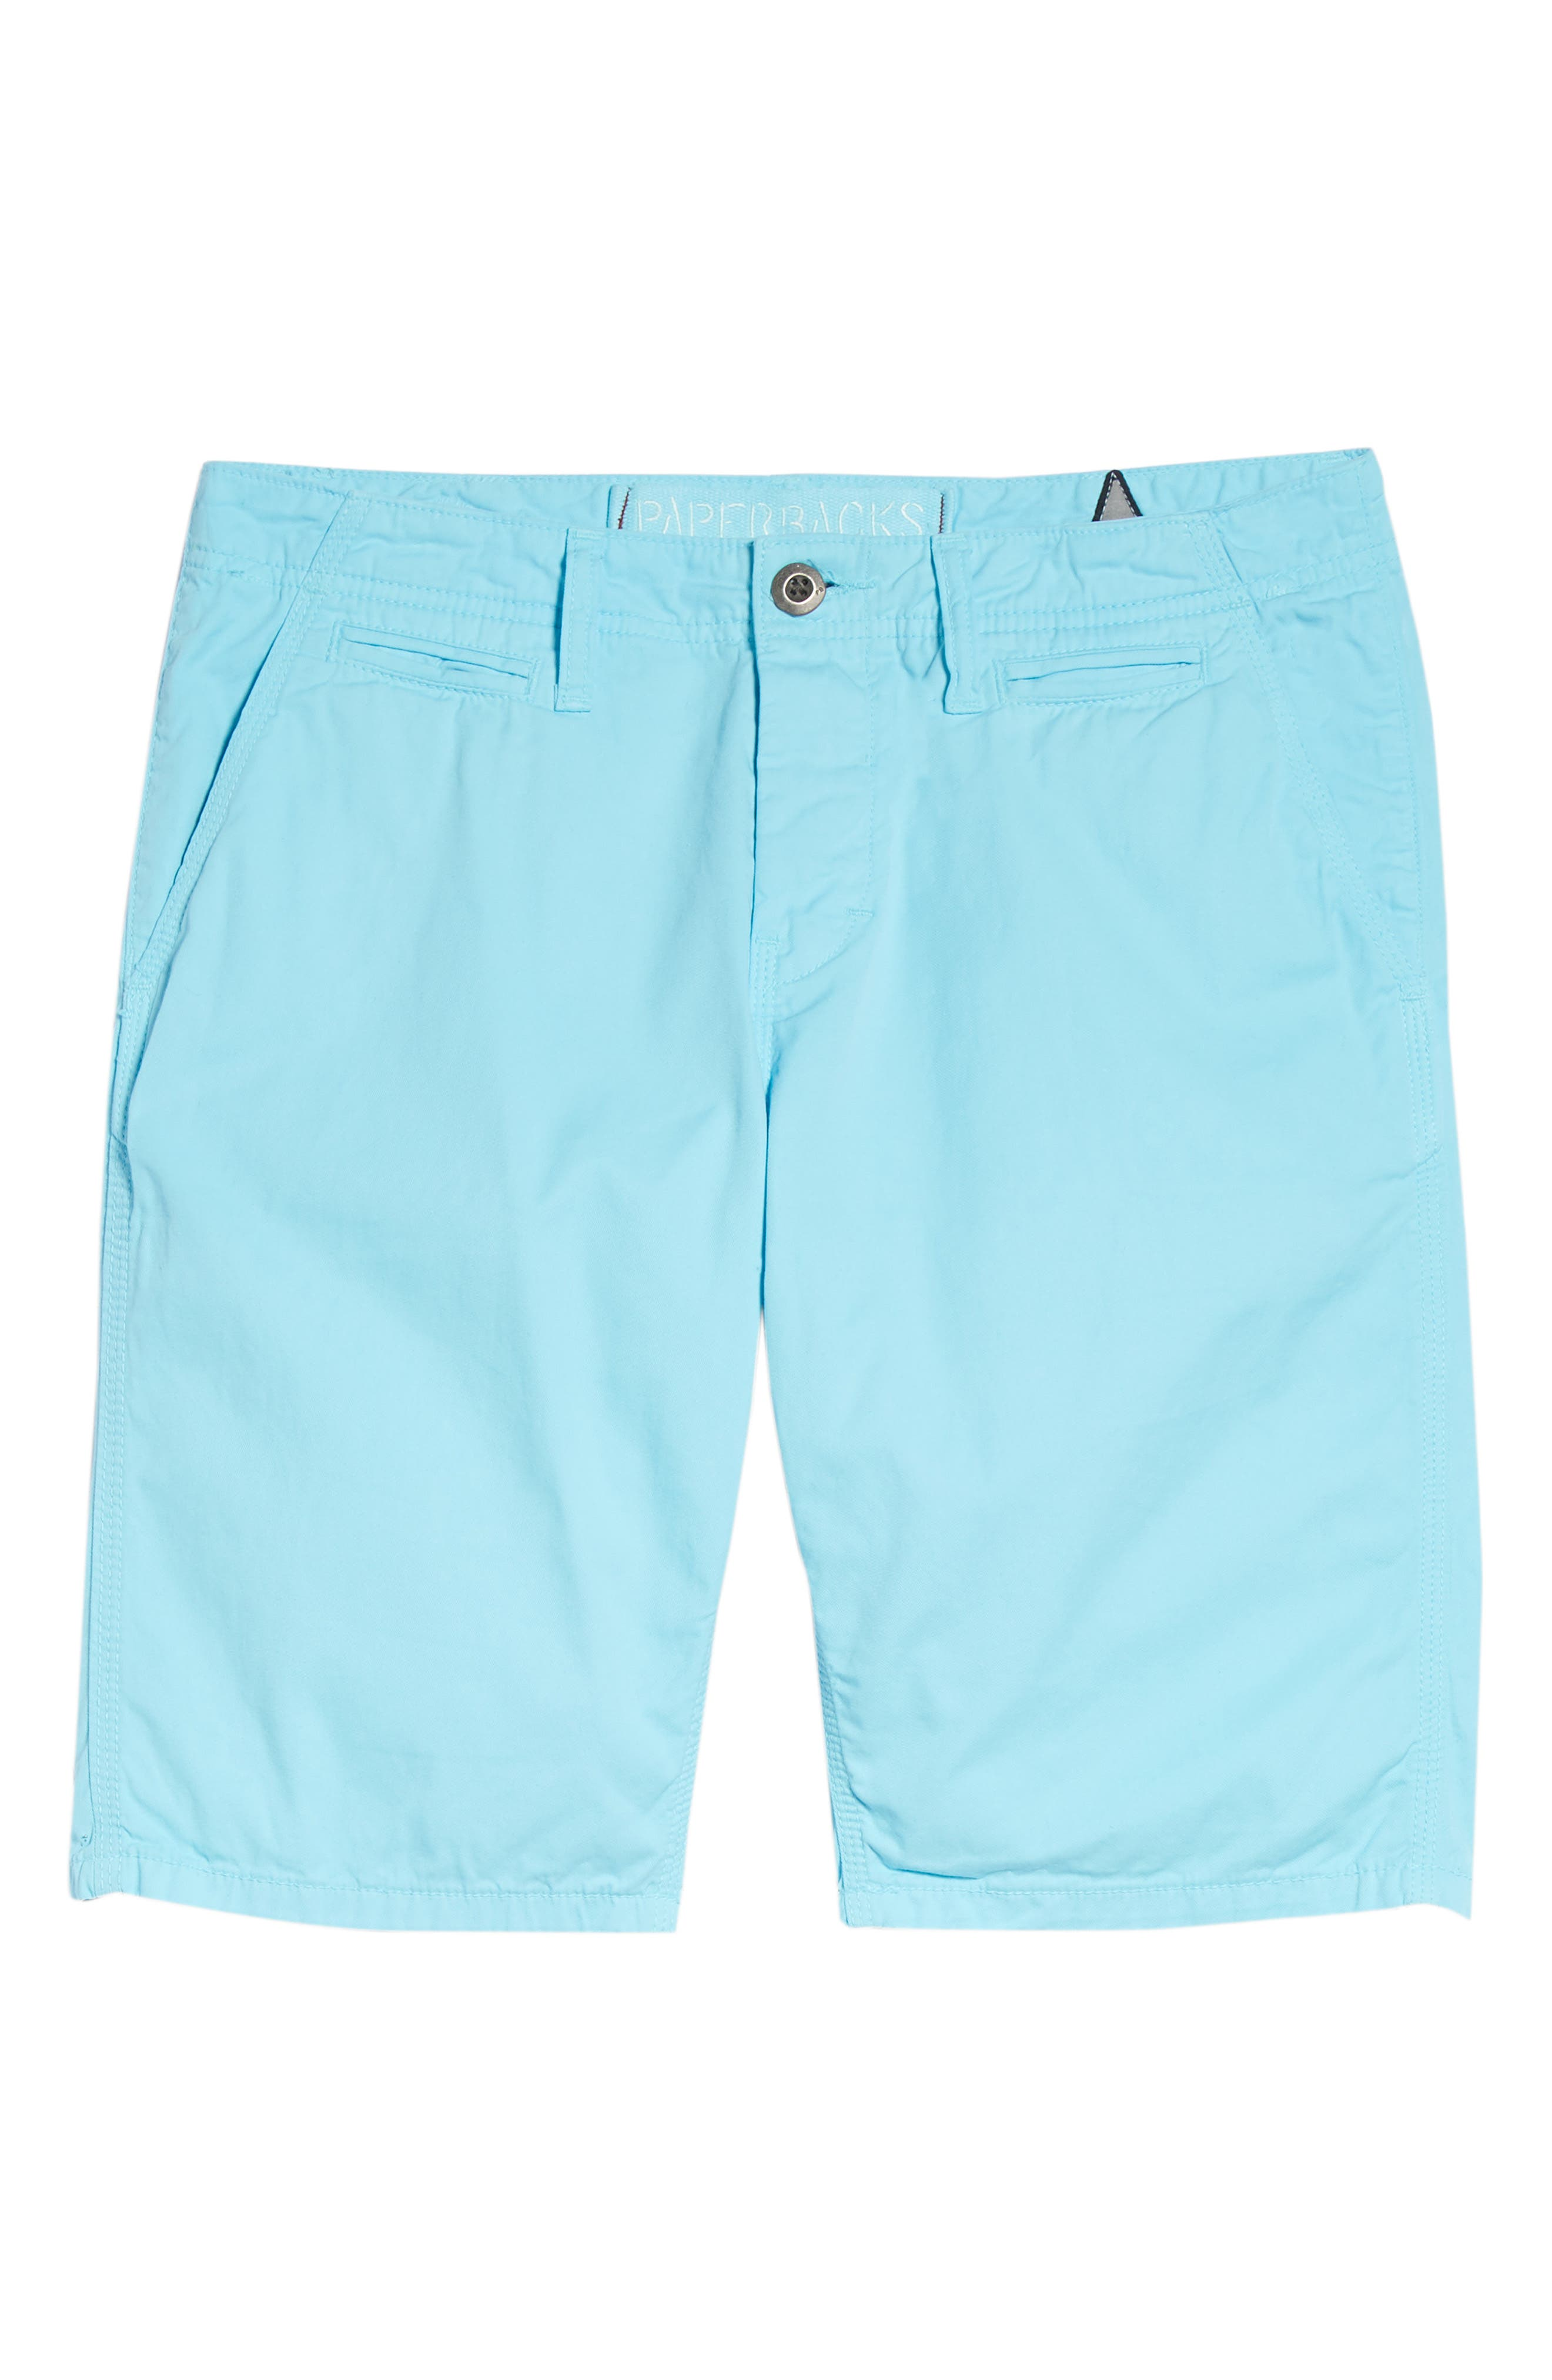 'Napa' Chino Shorts,                             Alternate thumbnail 67, color,